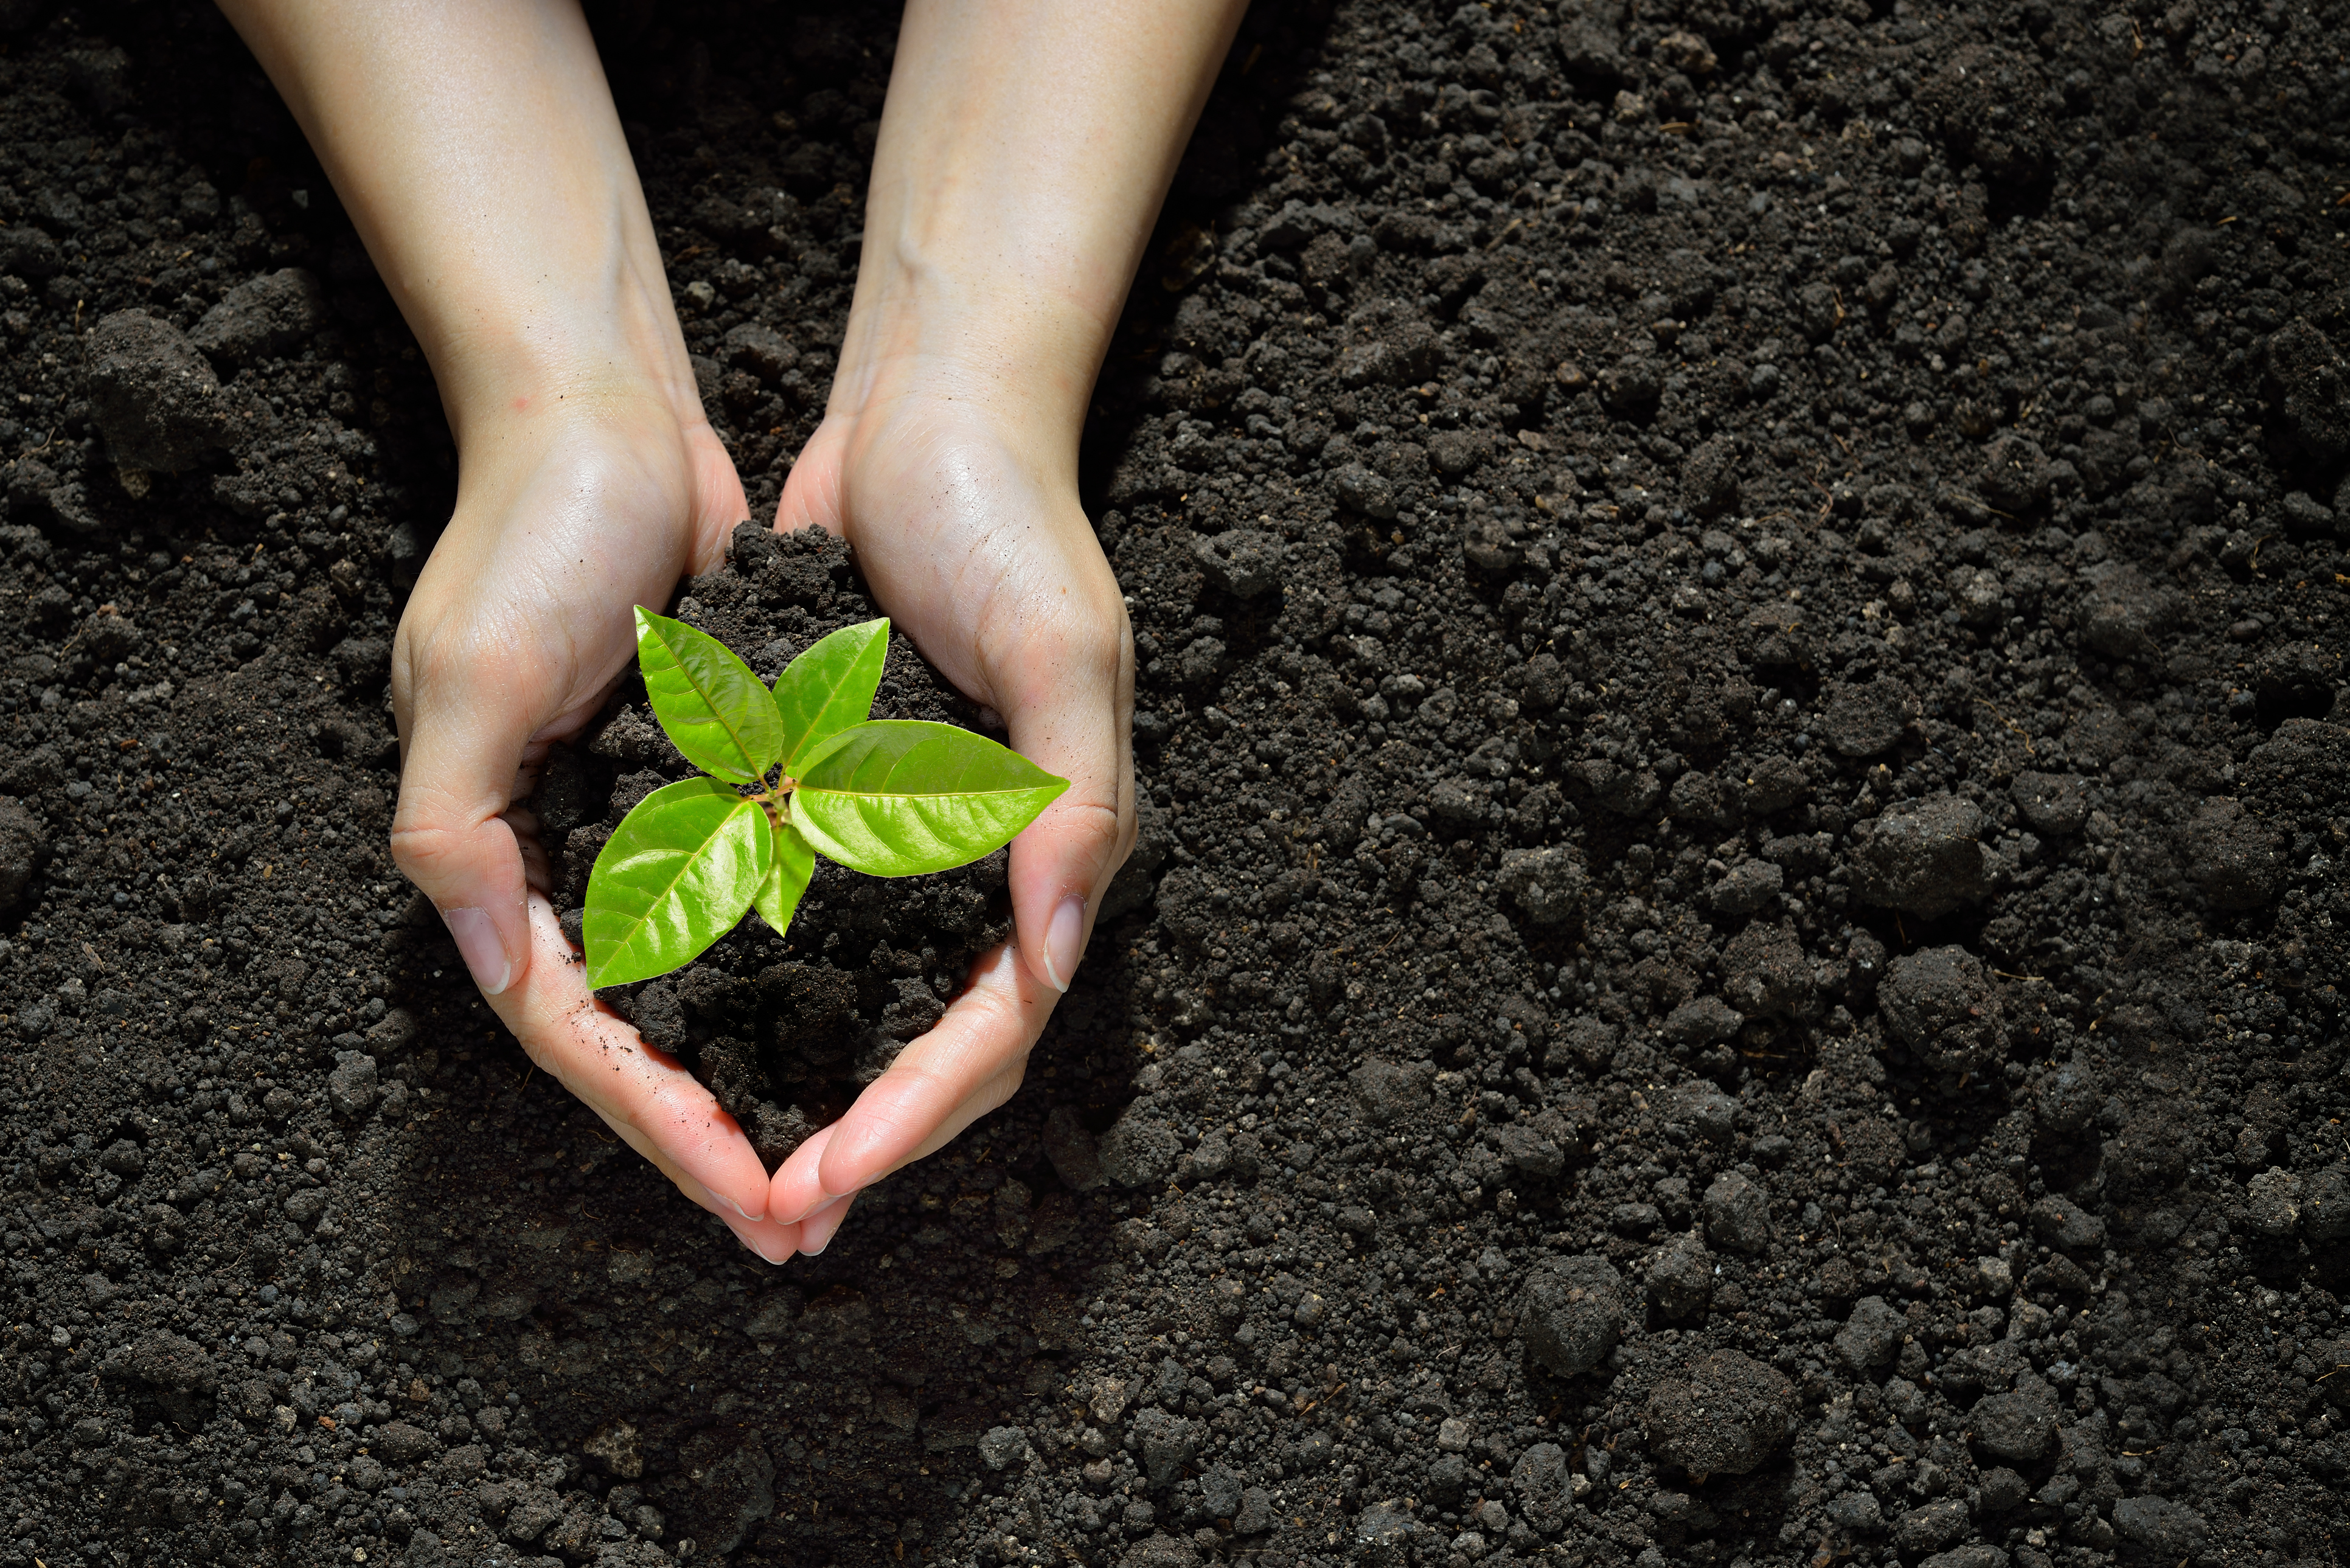 Contact with soil helps build the immune system (Thinkstock/PA)